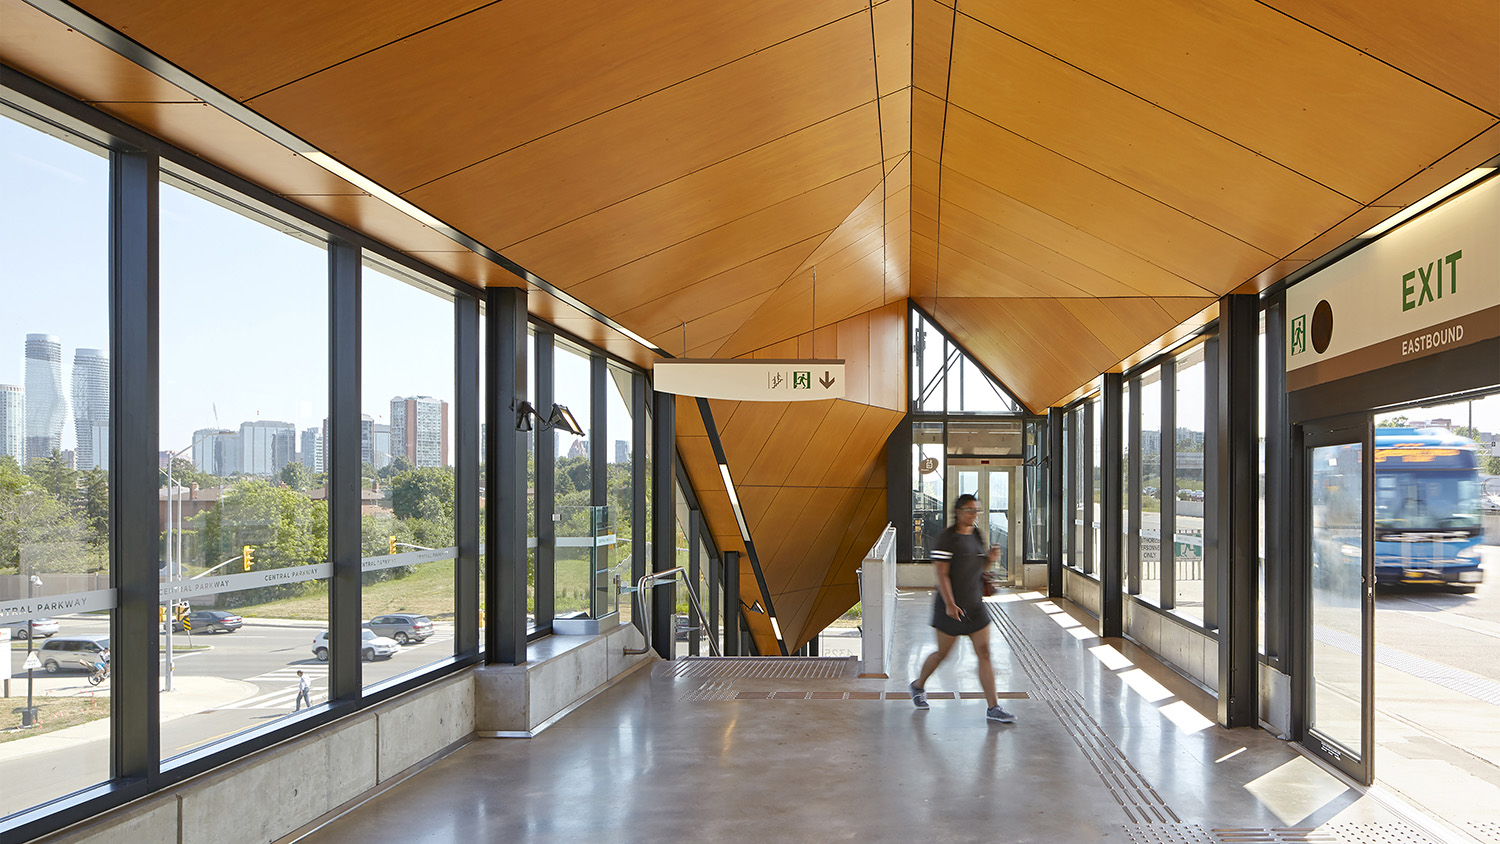 Mississauga Transitway - Elevated Station - Central Parkway Ben Rahn/A-Frame Inc.